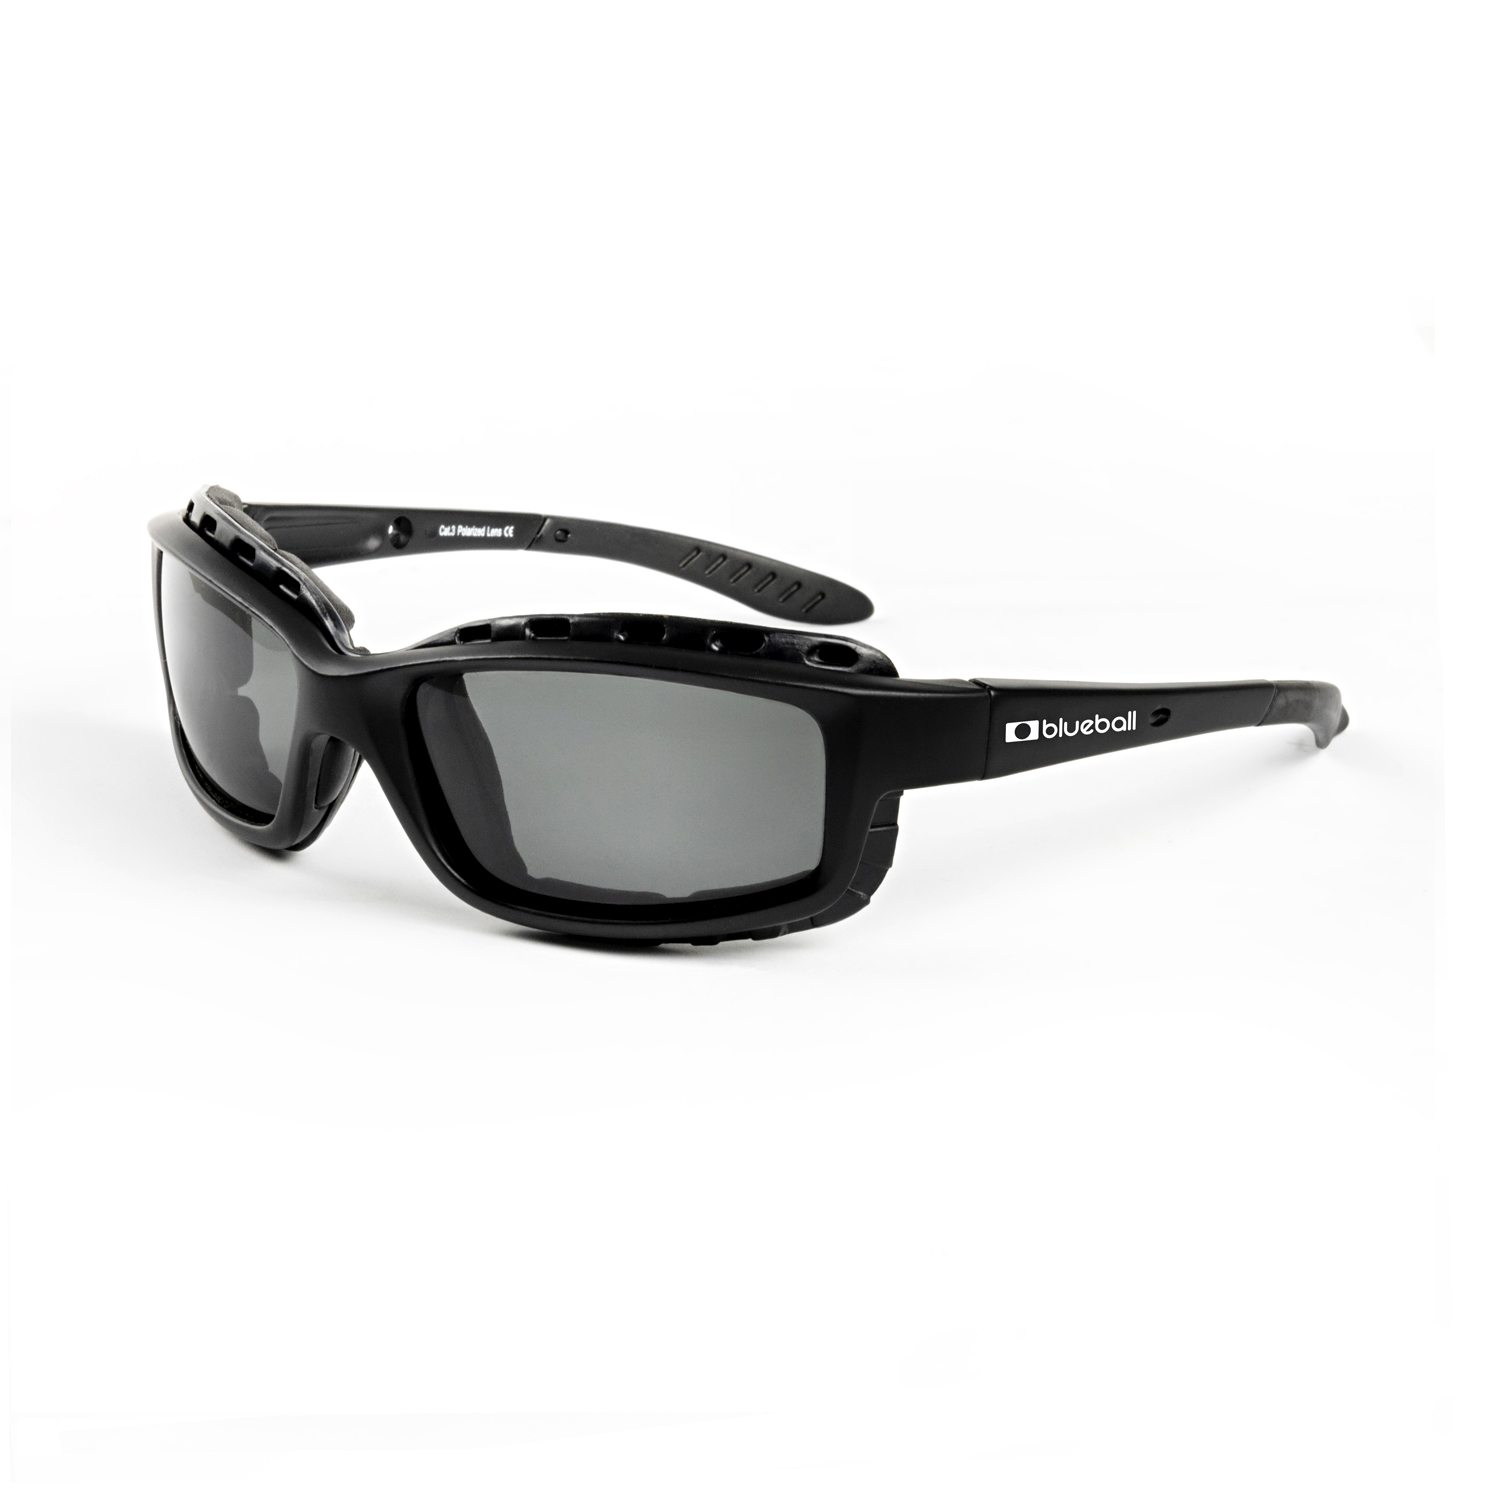 bb2000 sport sunglasses